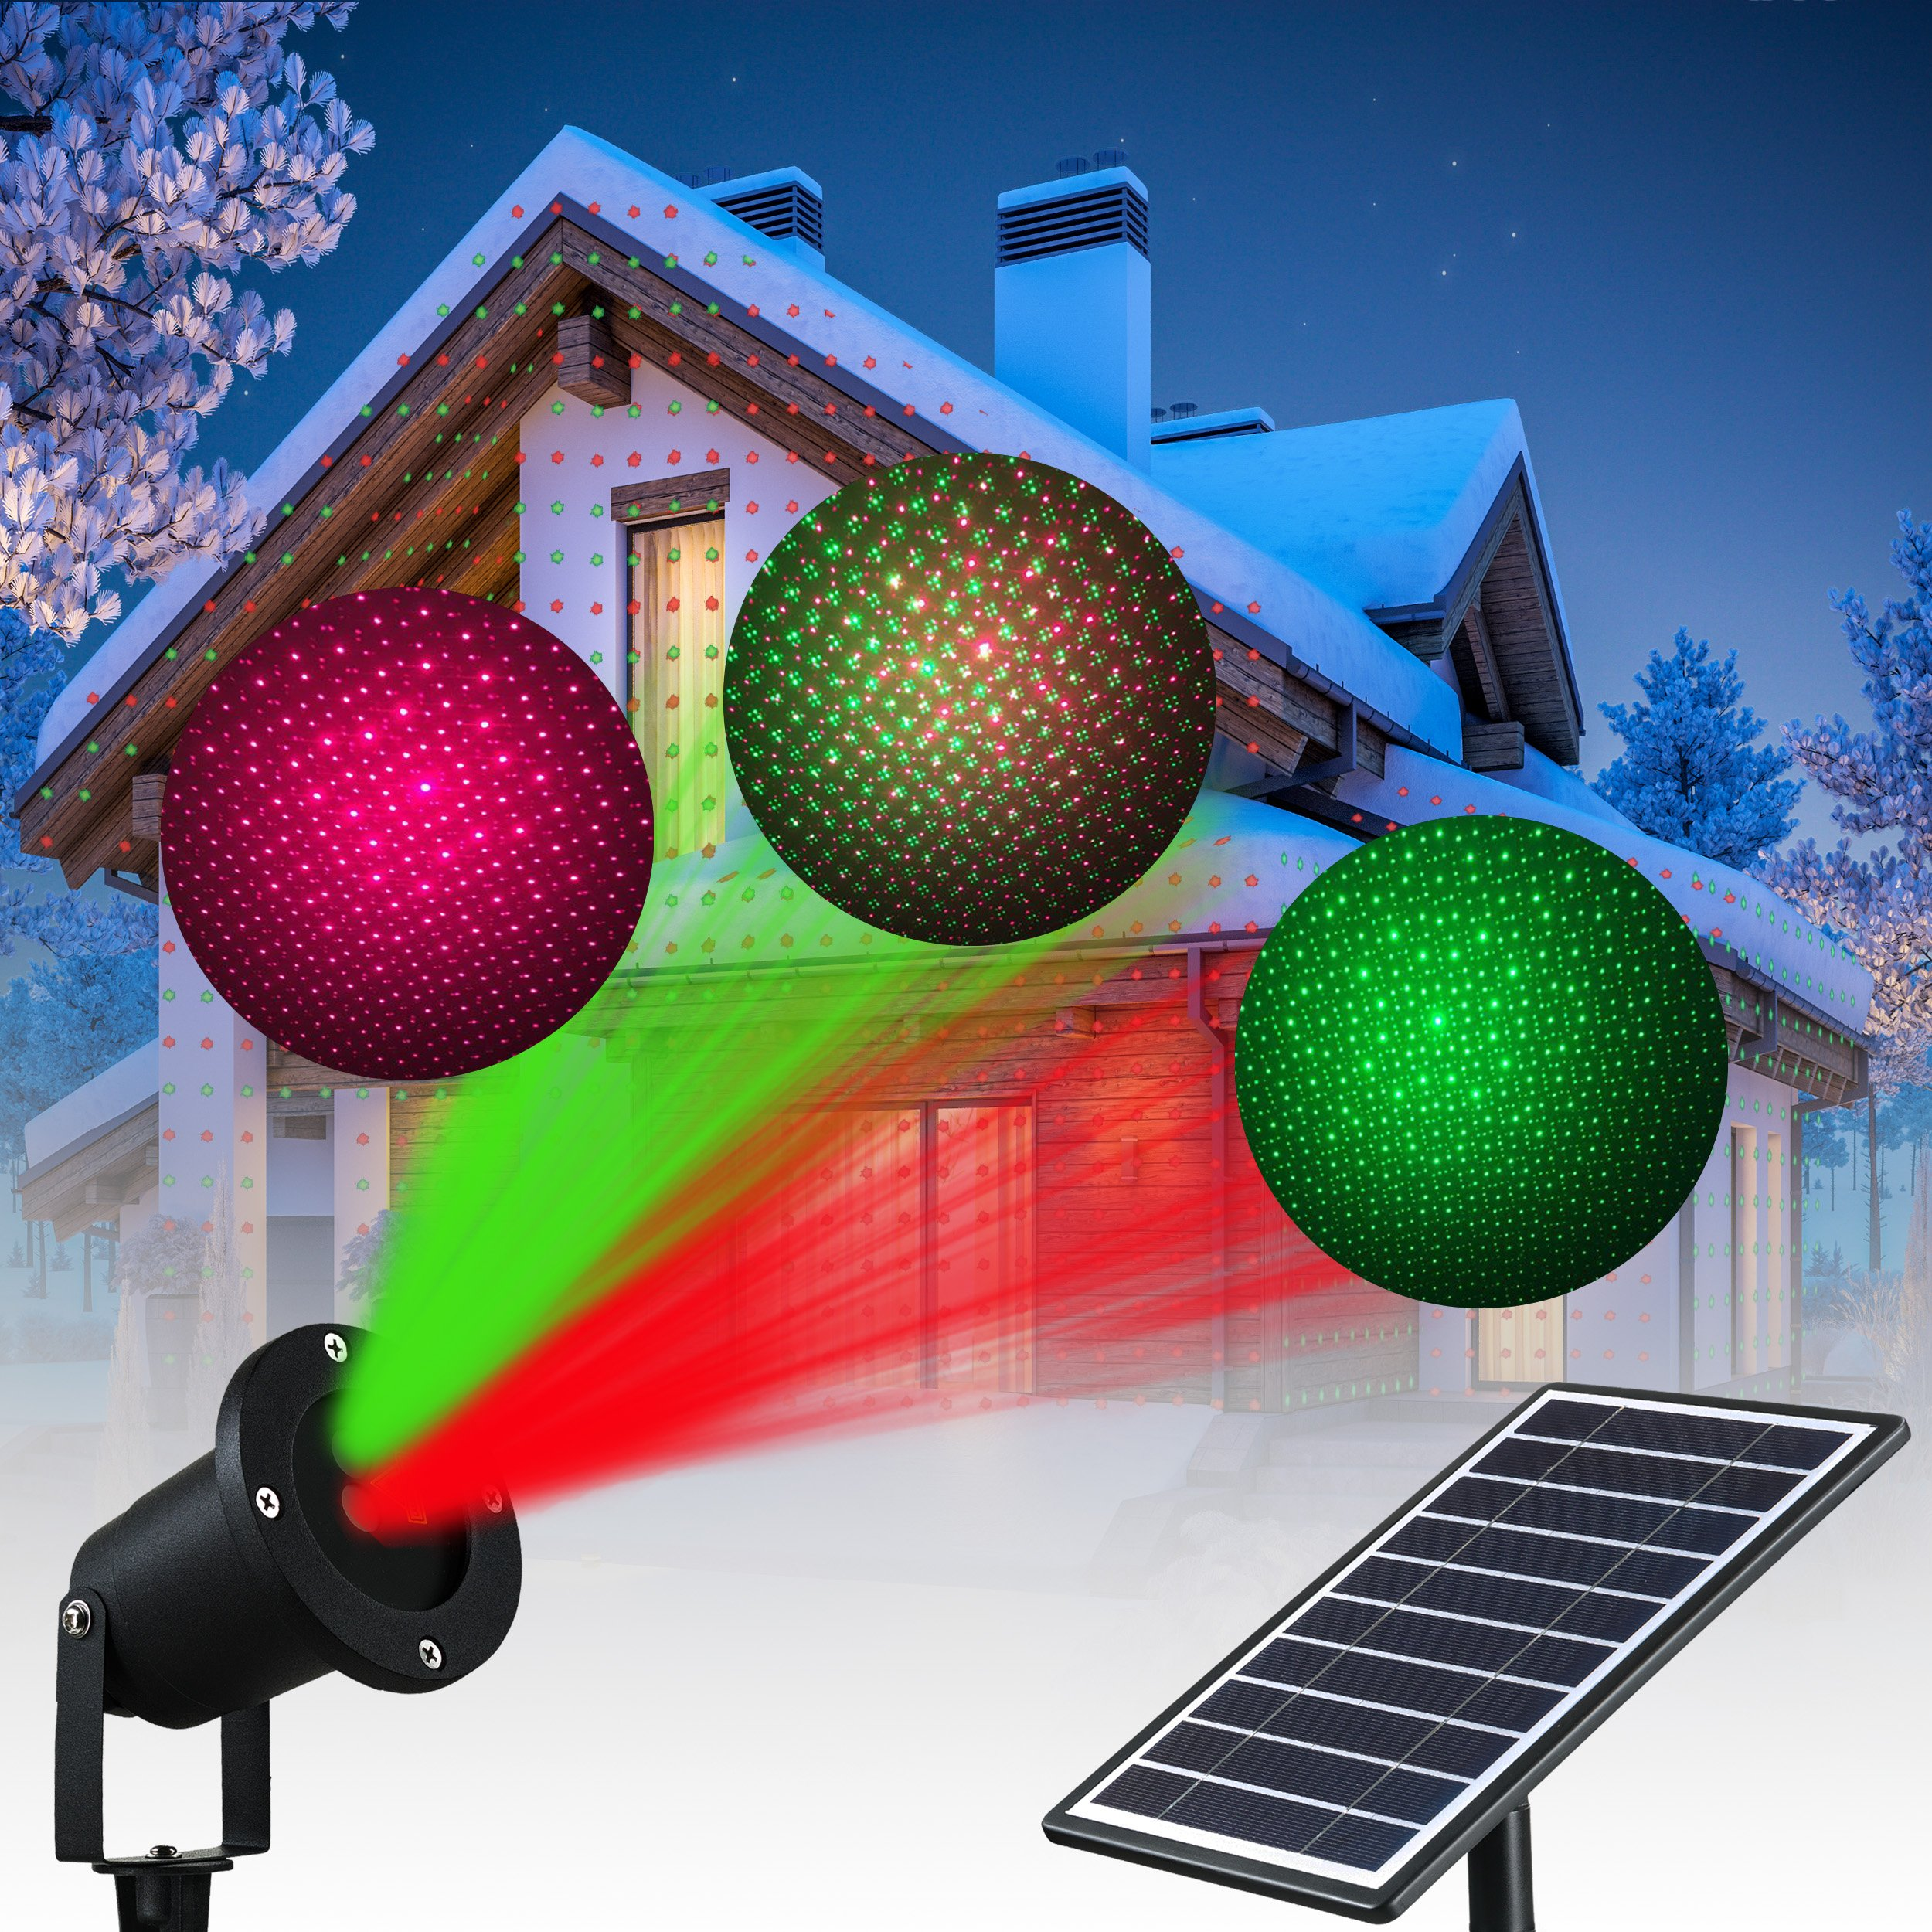 Solario Solar Powered Laser Light Projector w/All-Metal Aluminum Design | Extra-Bright LED Stake Lights | 100% Weather Resistant Outdoor Christmas Lights (Red & Green) (3 Patterns) by Solario (Image #1)